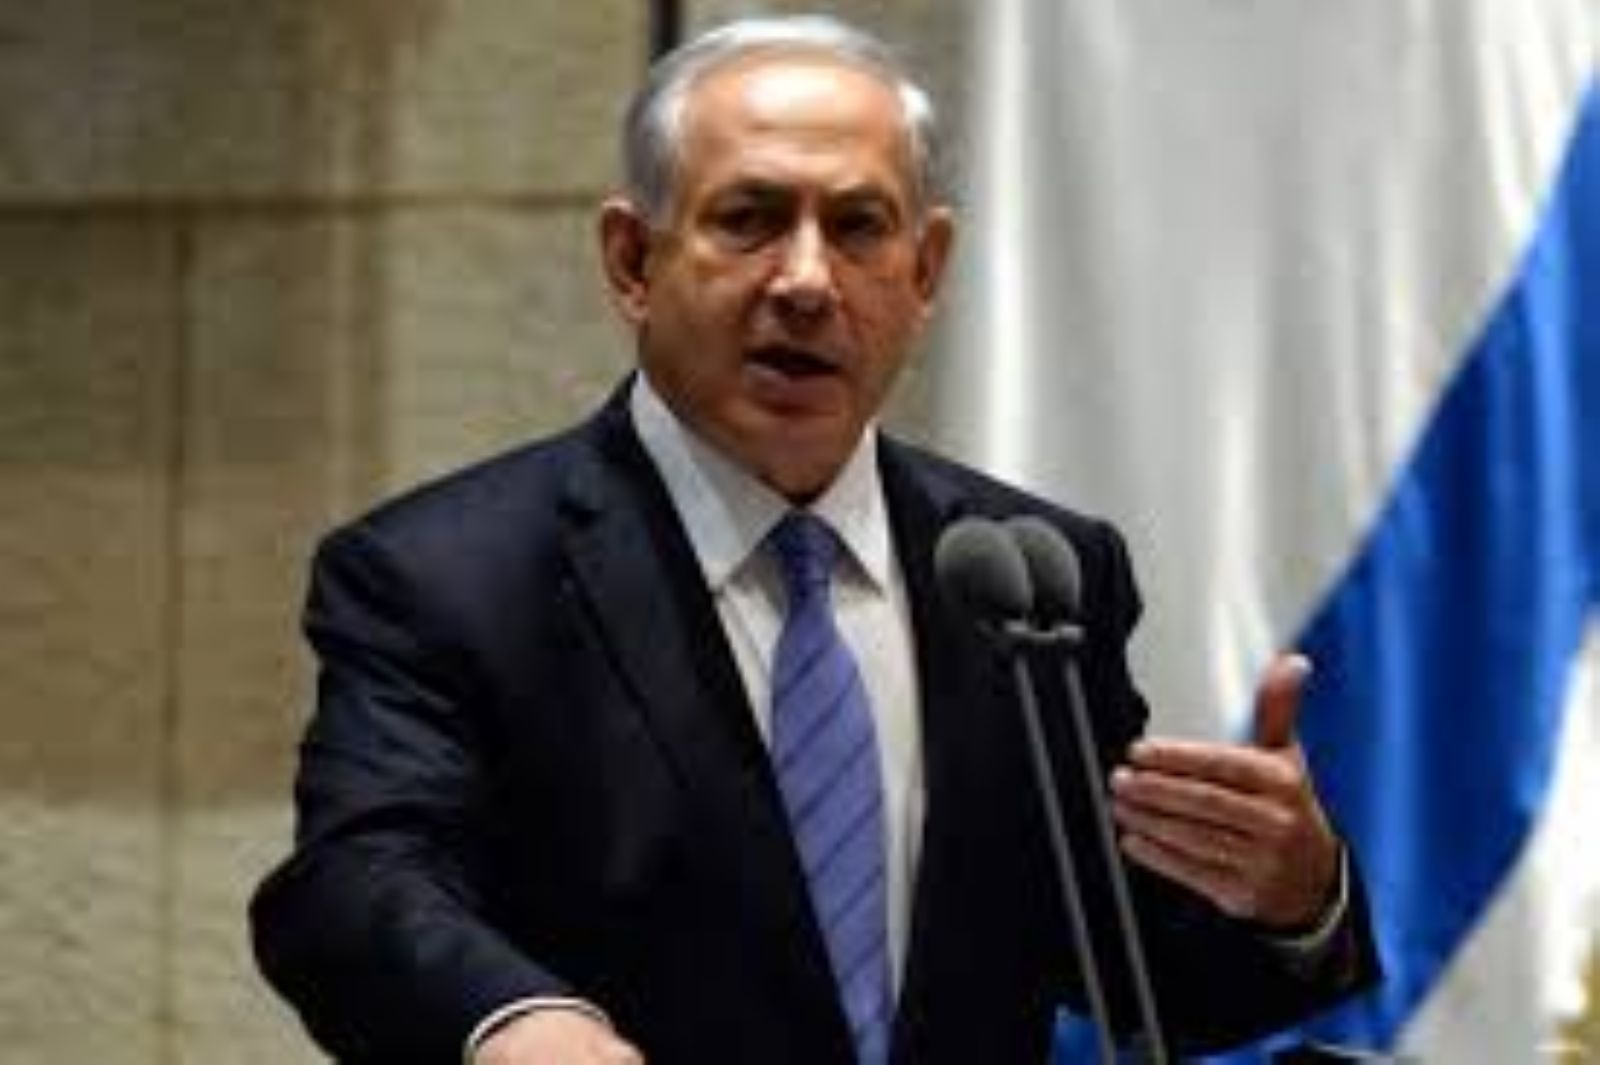 Netanyahu plans to reduce electoral threshold for upcoming elections